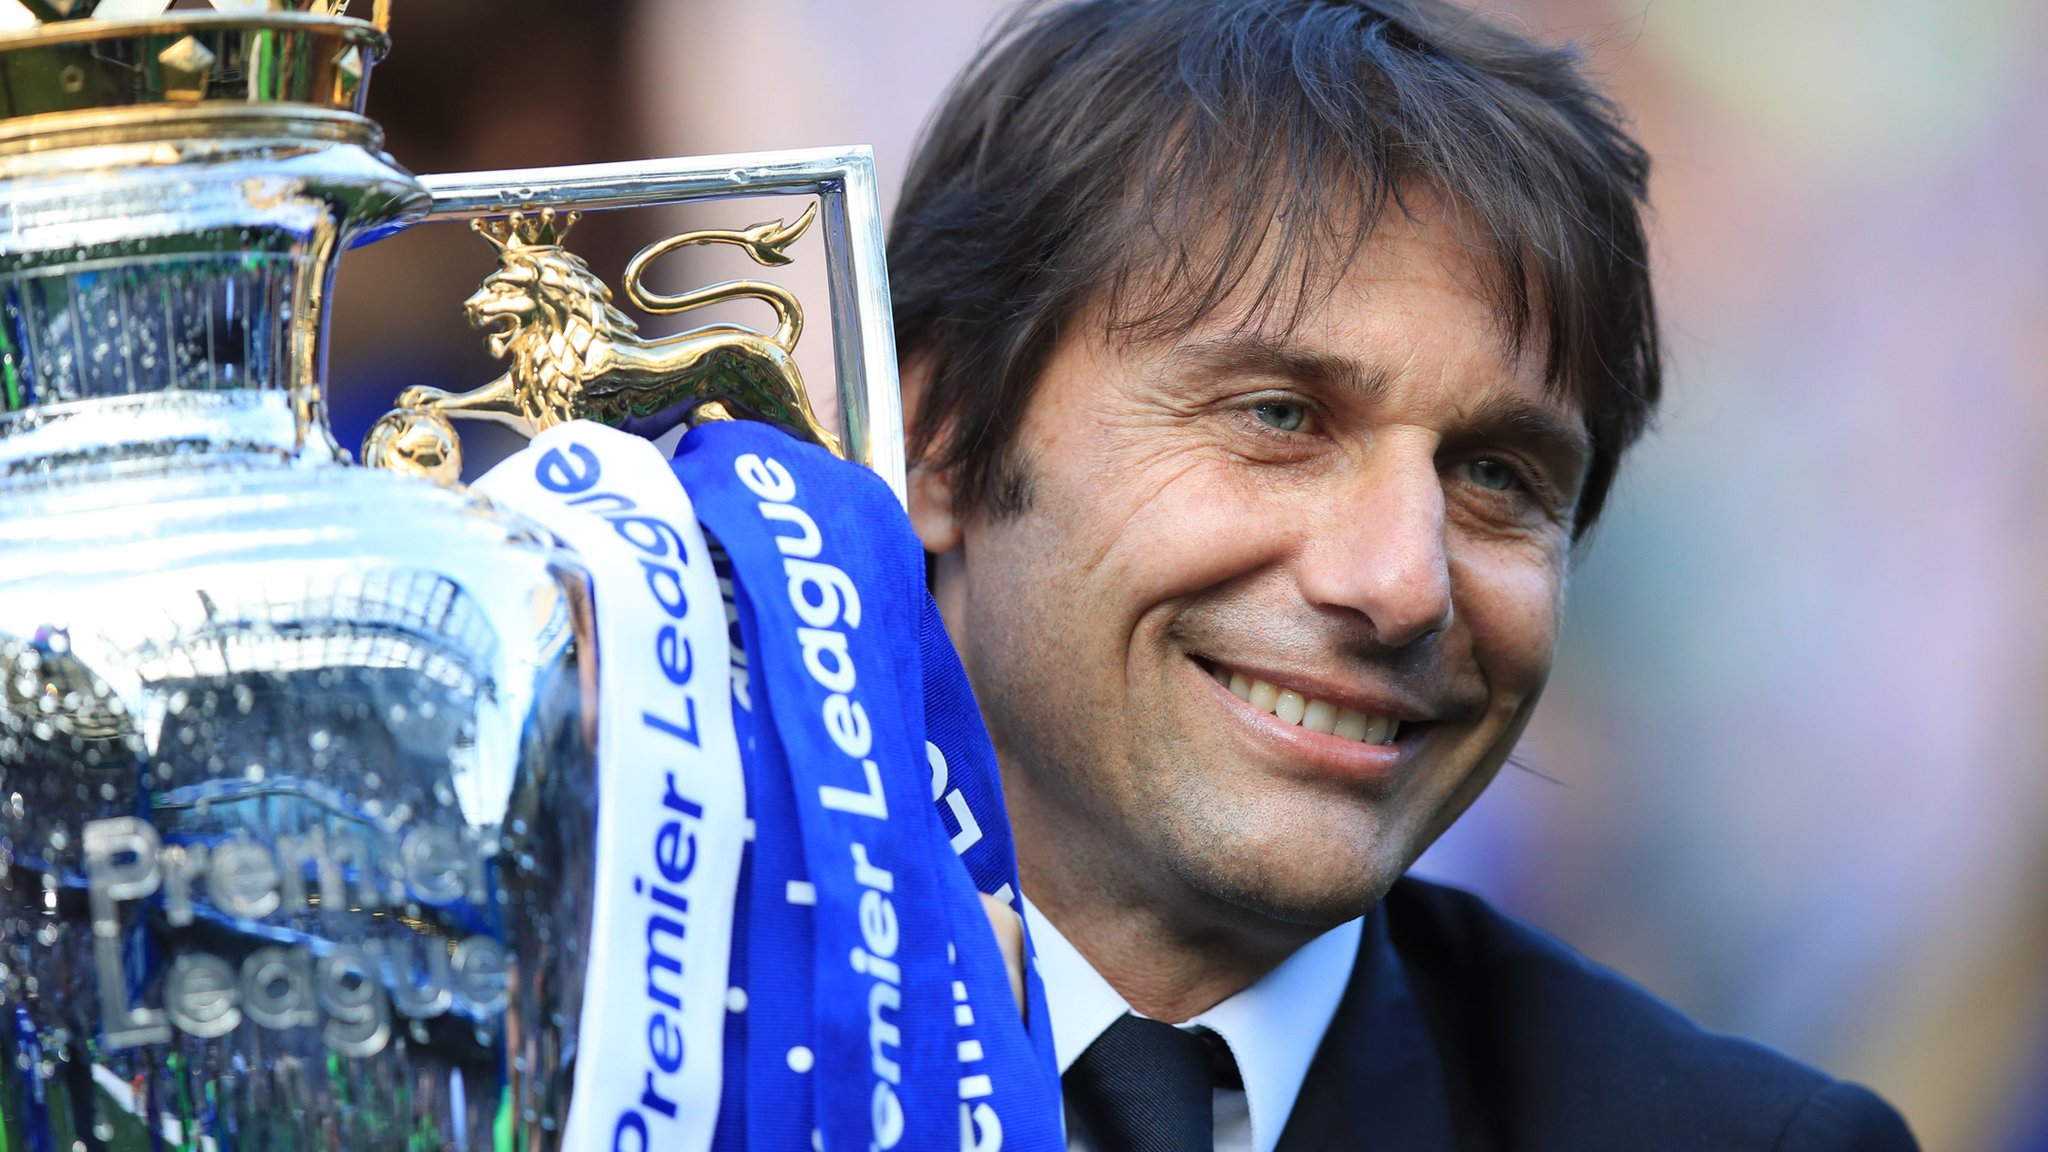 Chelsea's Conte named manager of the year by LMA